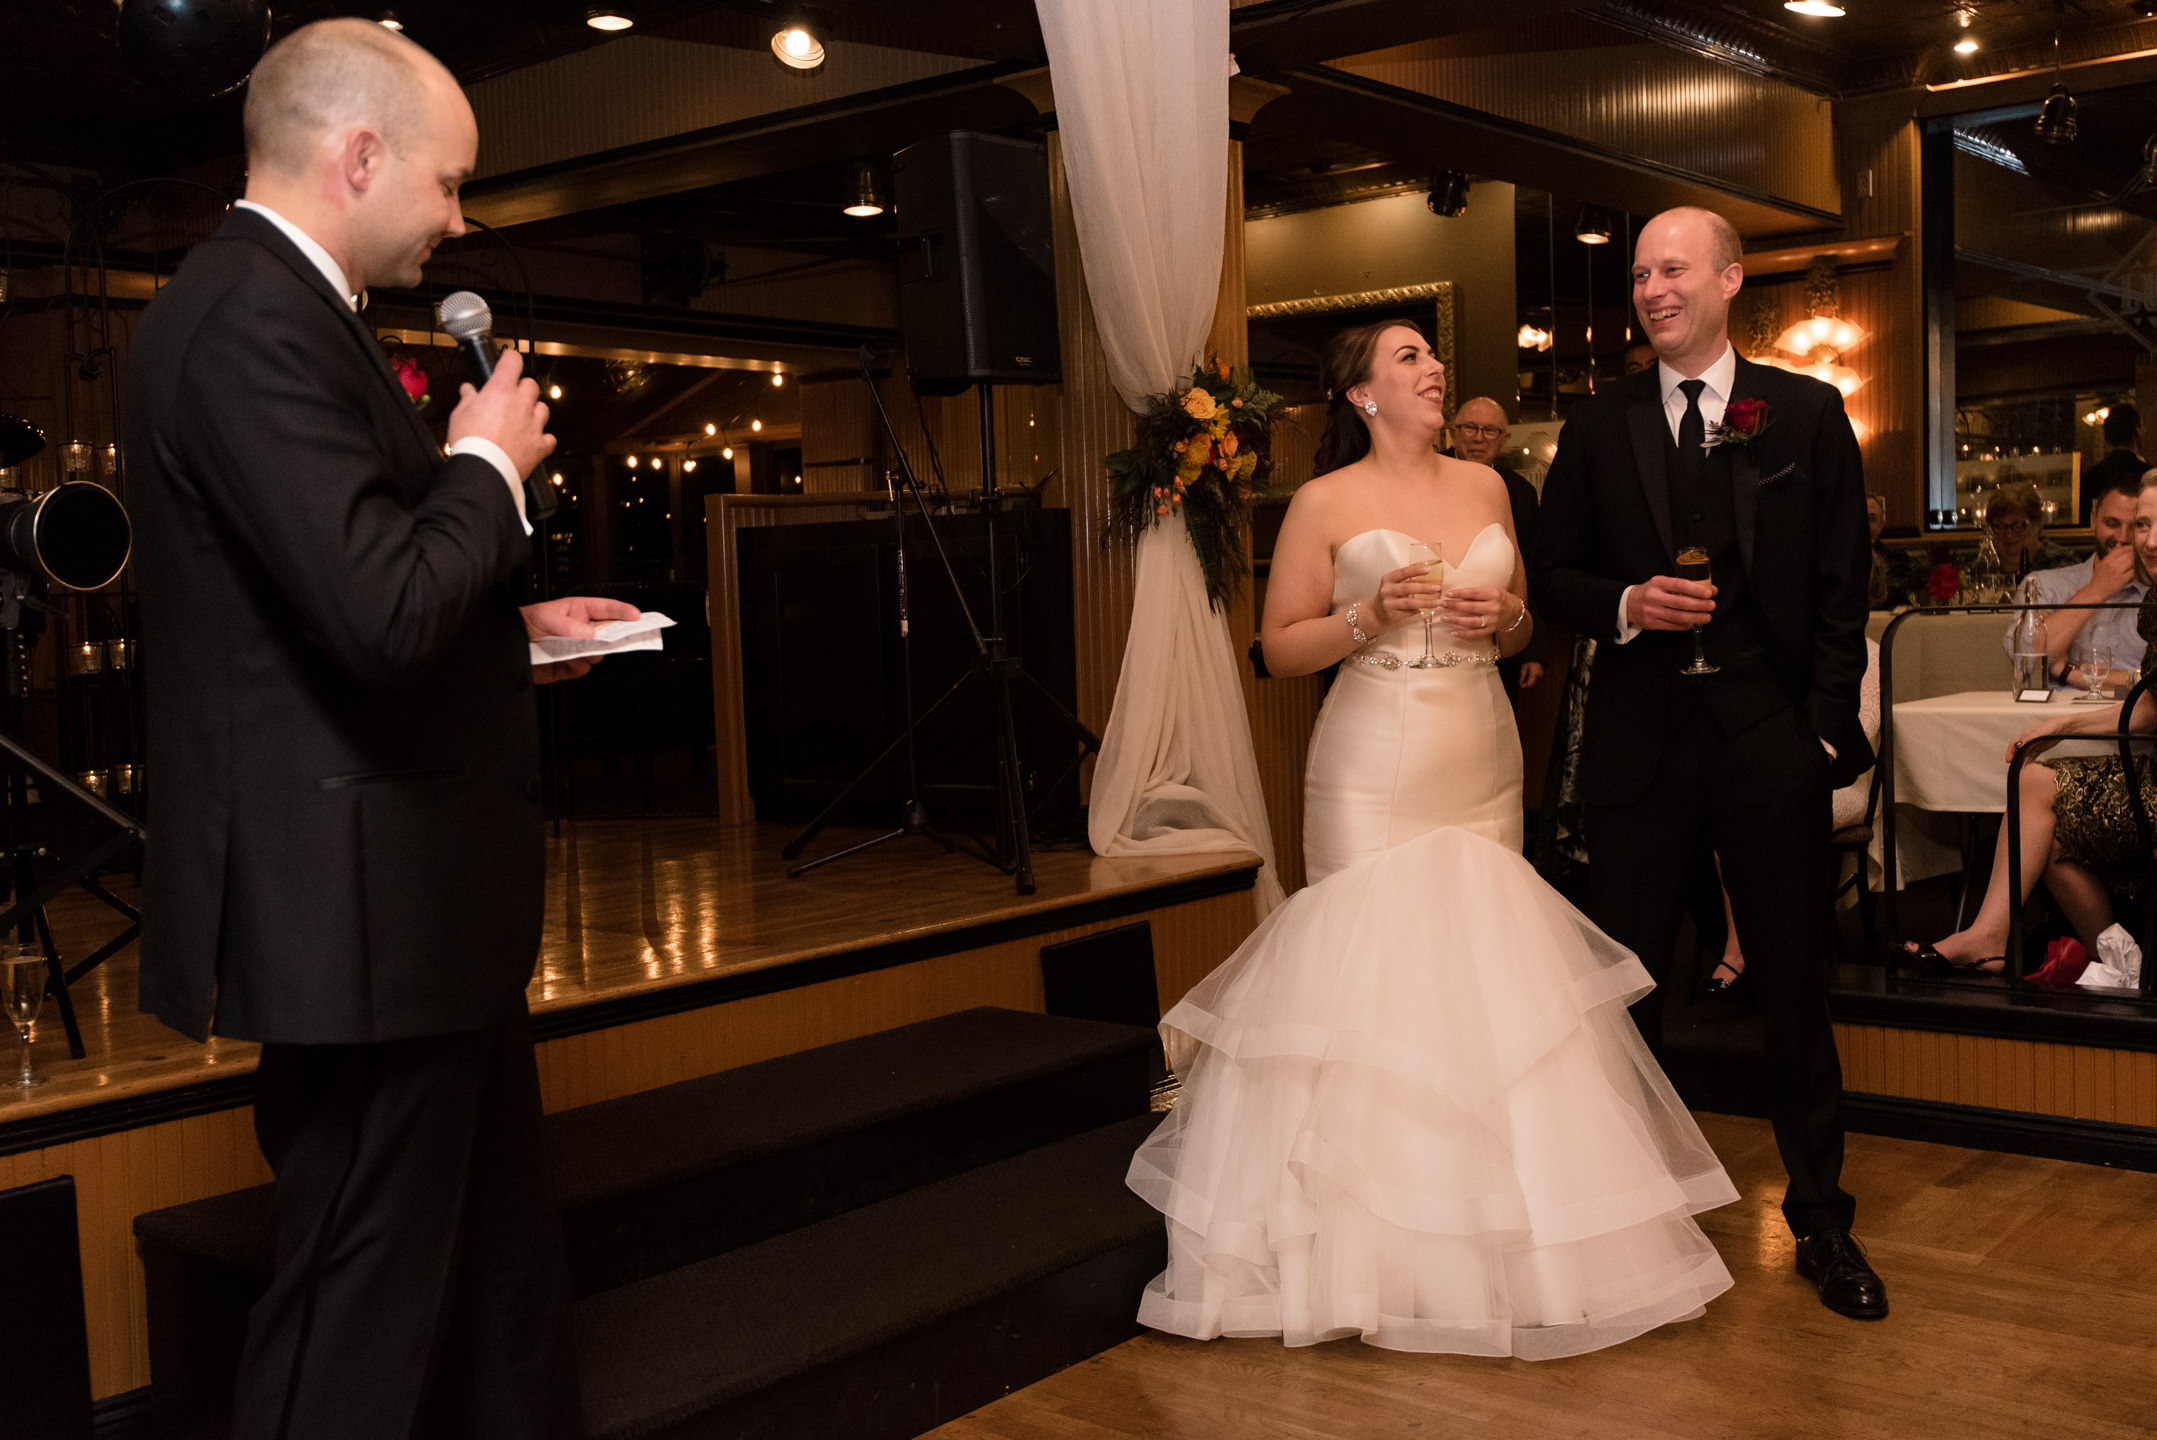 Bride and Groom Listen to Wedding Toast at Lake Union Cafe